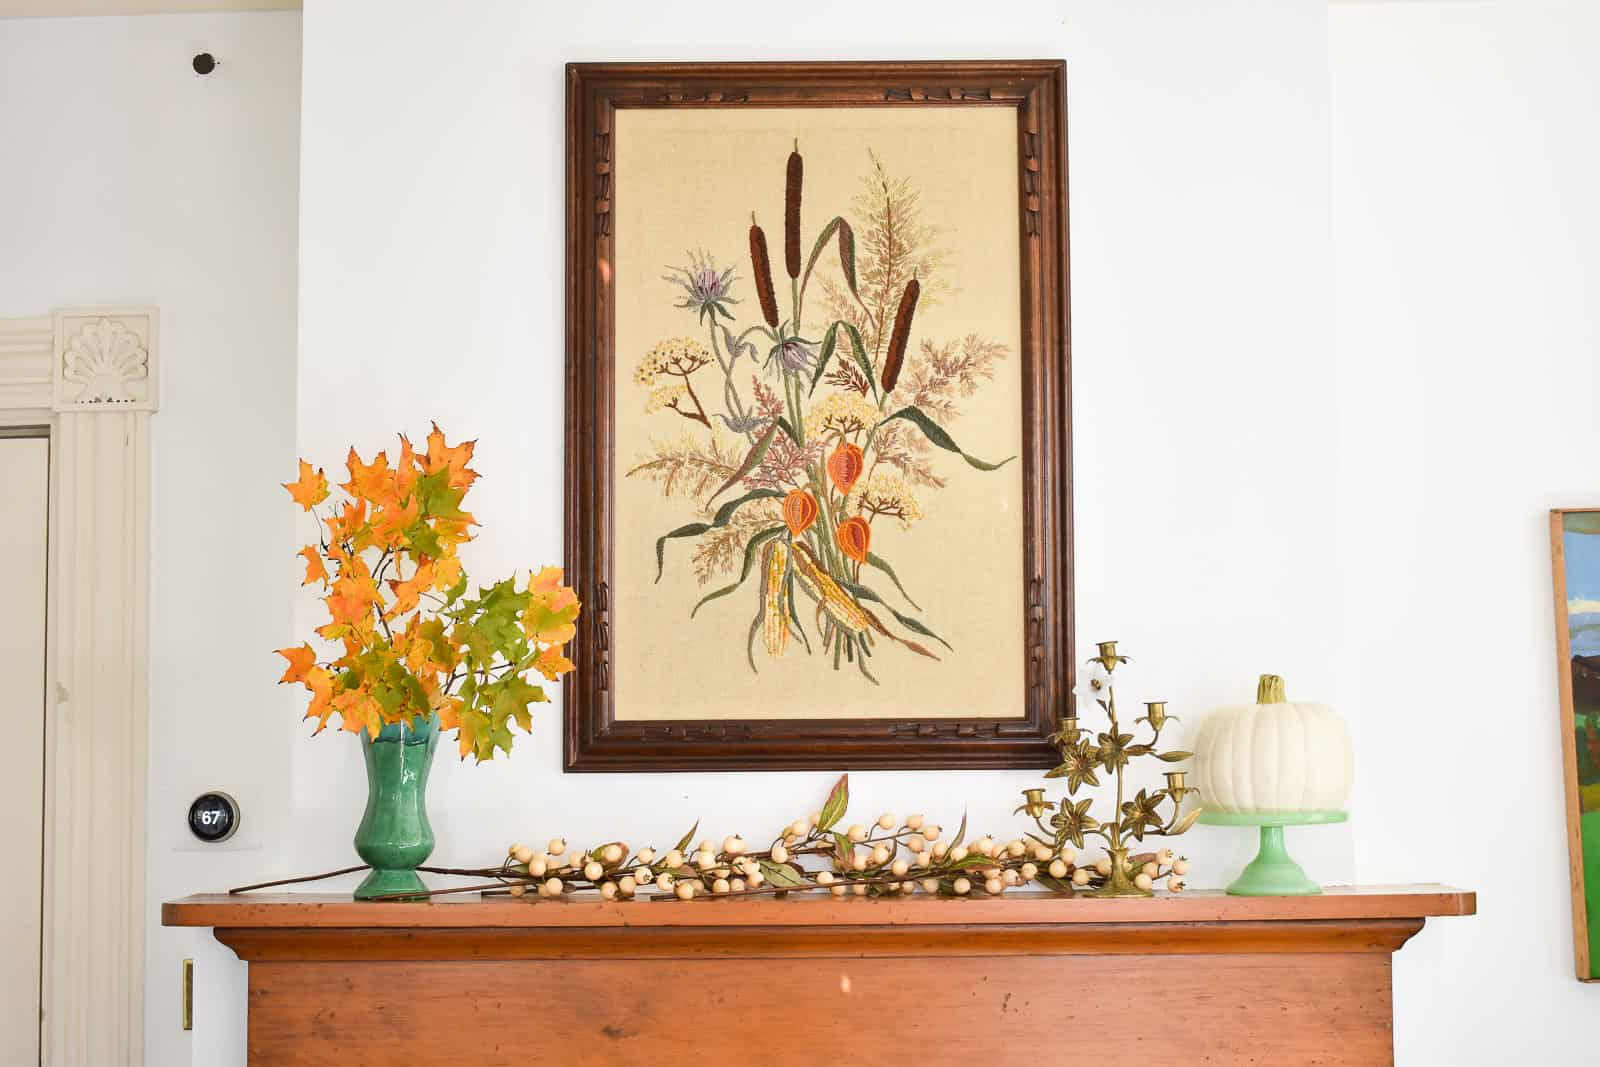 finding the right balance on your mantel